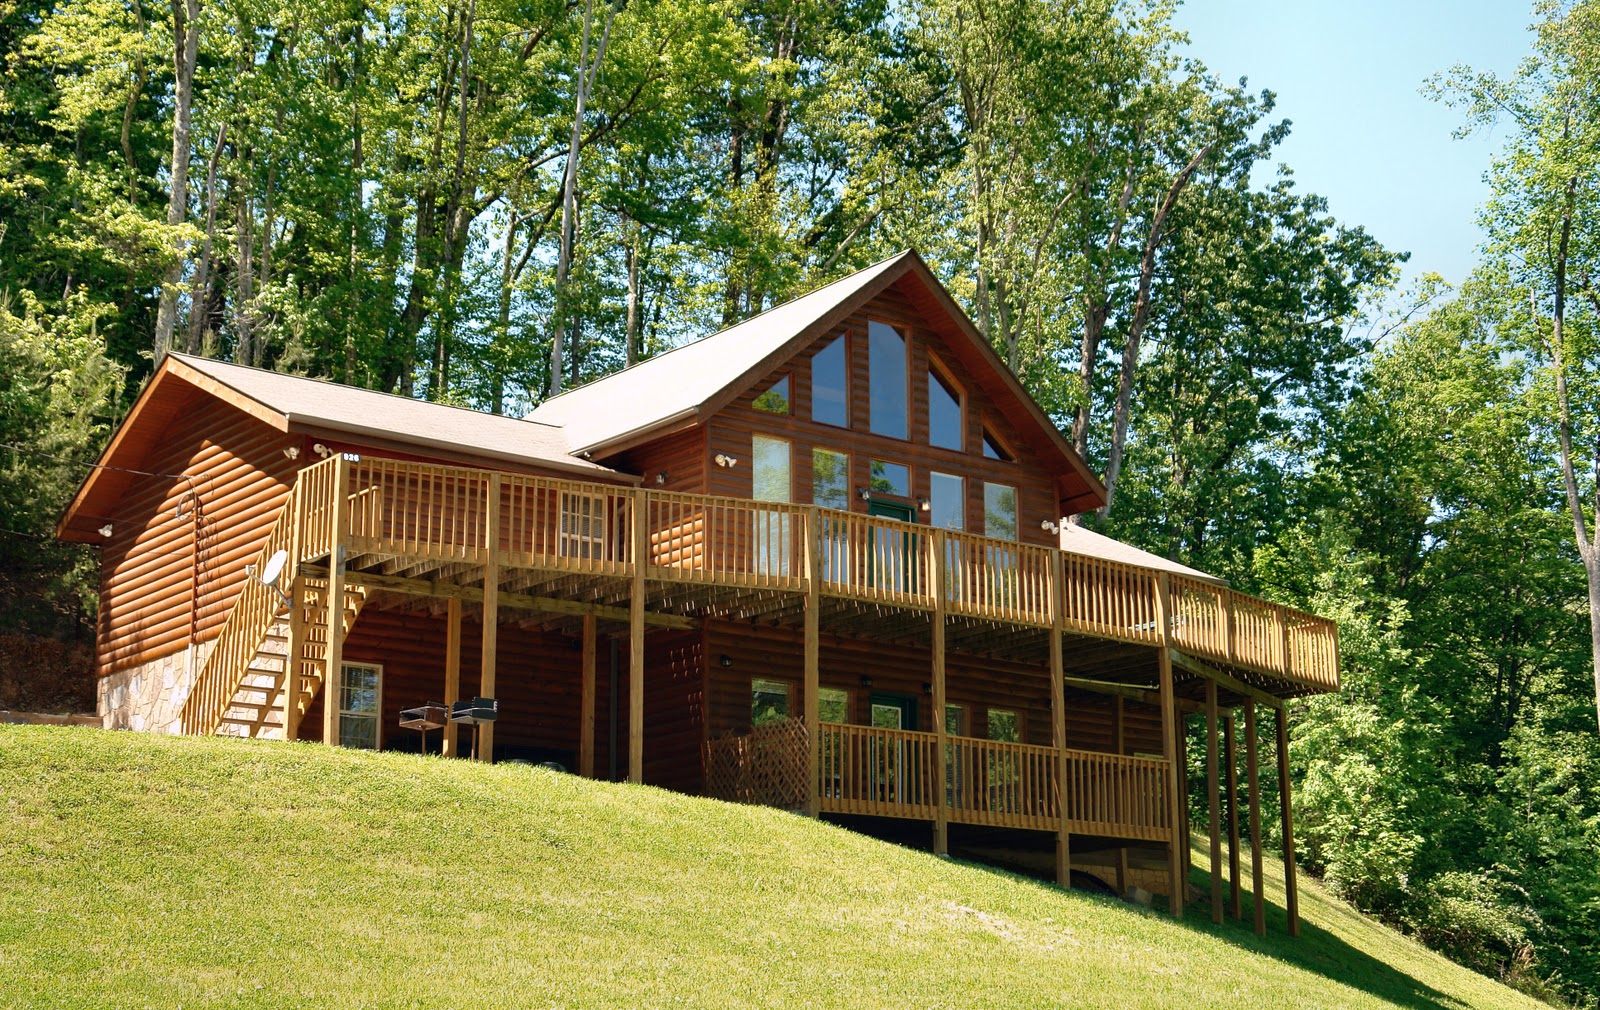 pigeon cabins forge hills wildhog slide resort in near hideaway tn